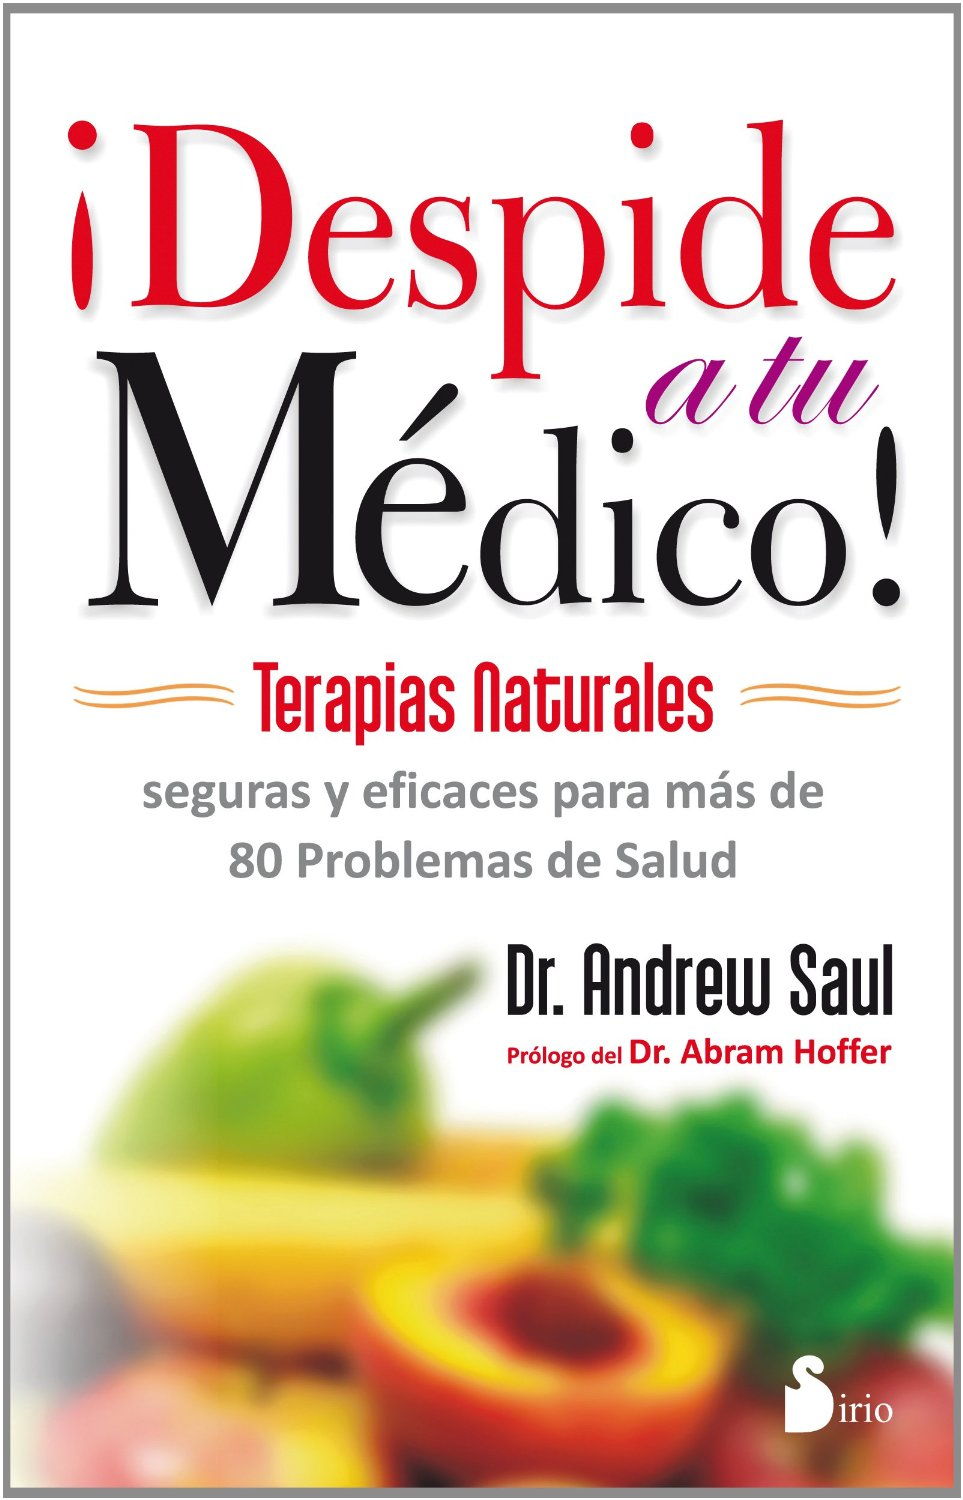 Spanish Editions of Andrew W  Saul's Books